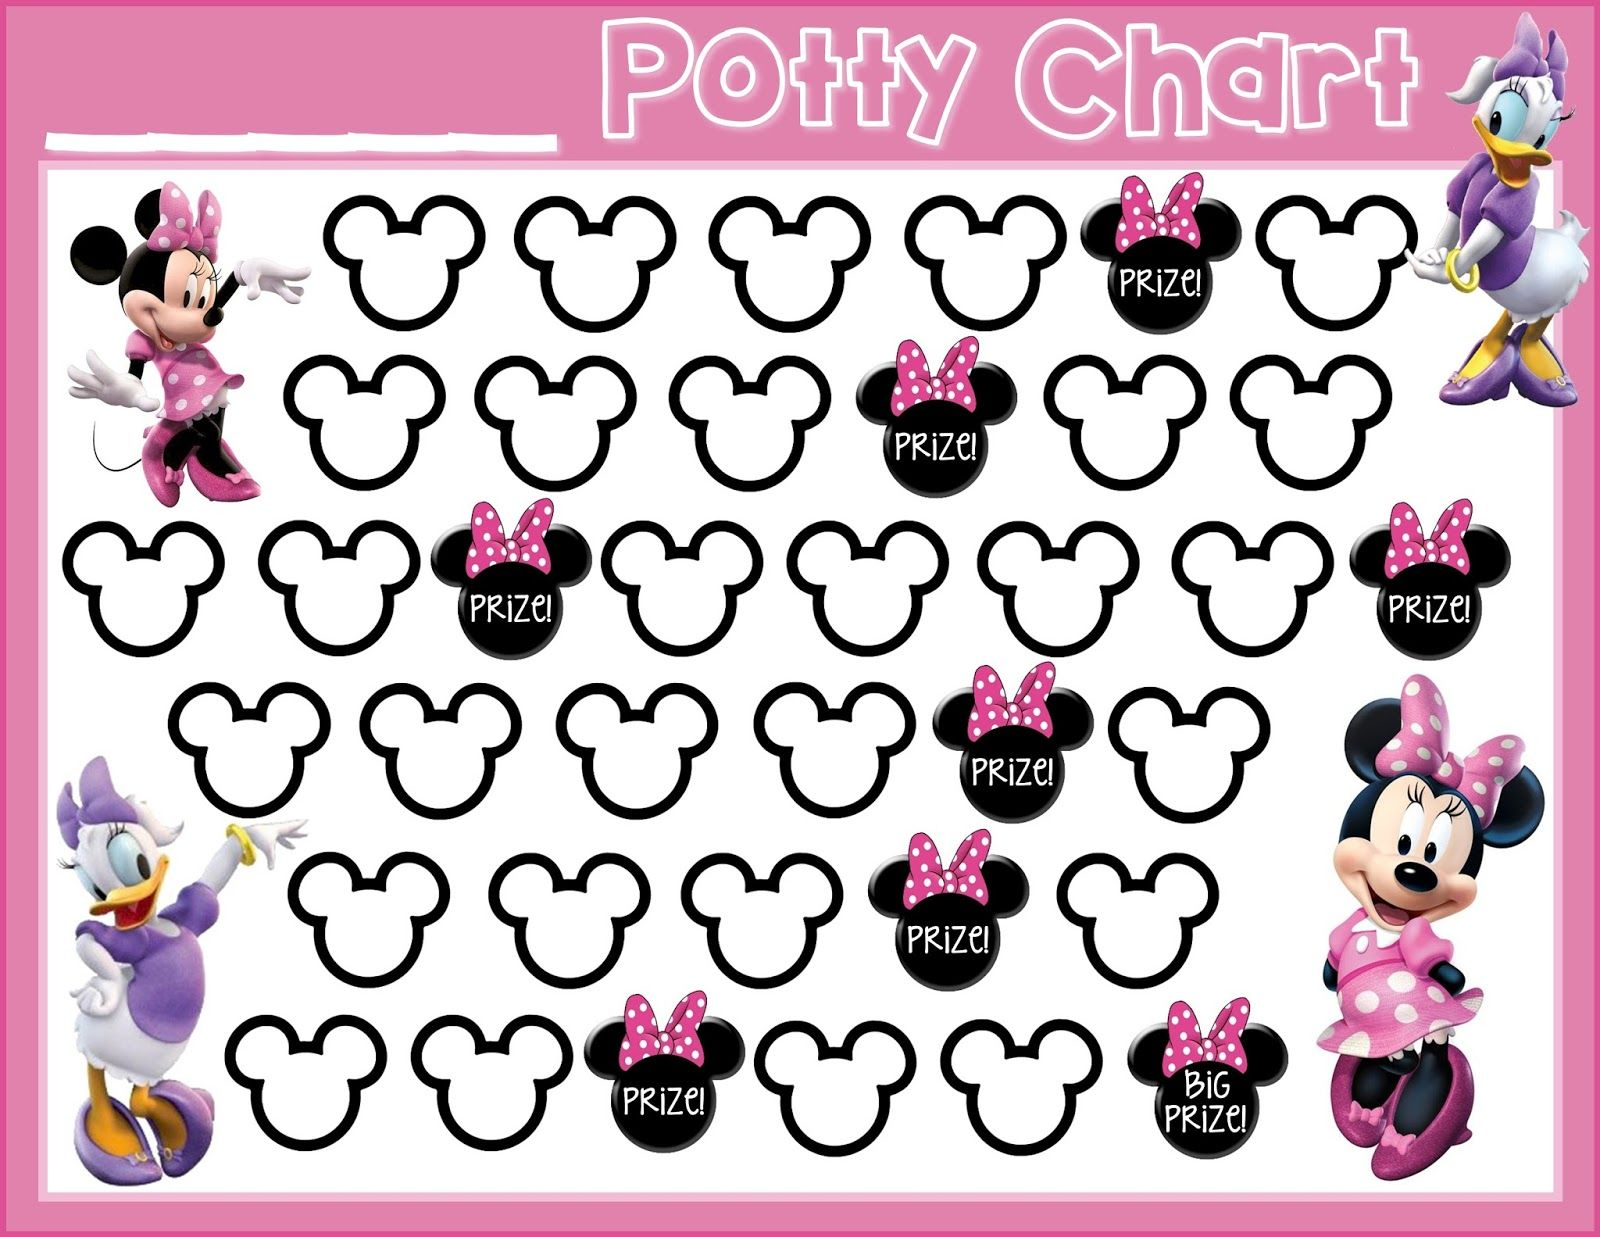 graphic relating to Printable Potty Charts for Toddlers known as Printable Potty Chart Minnie Mouse XC93 Advancedmagebysara